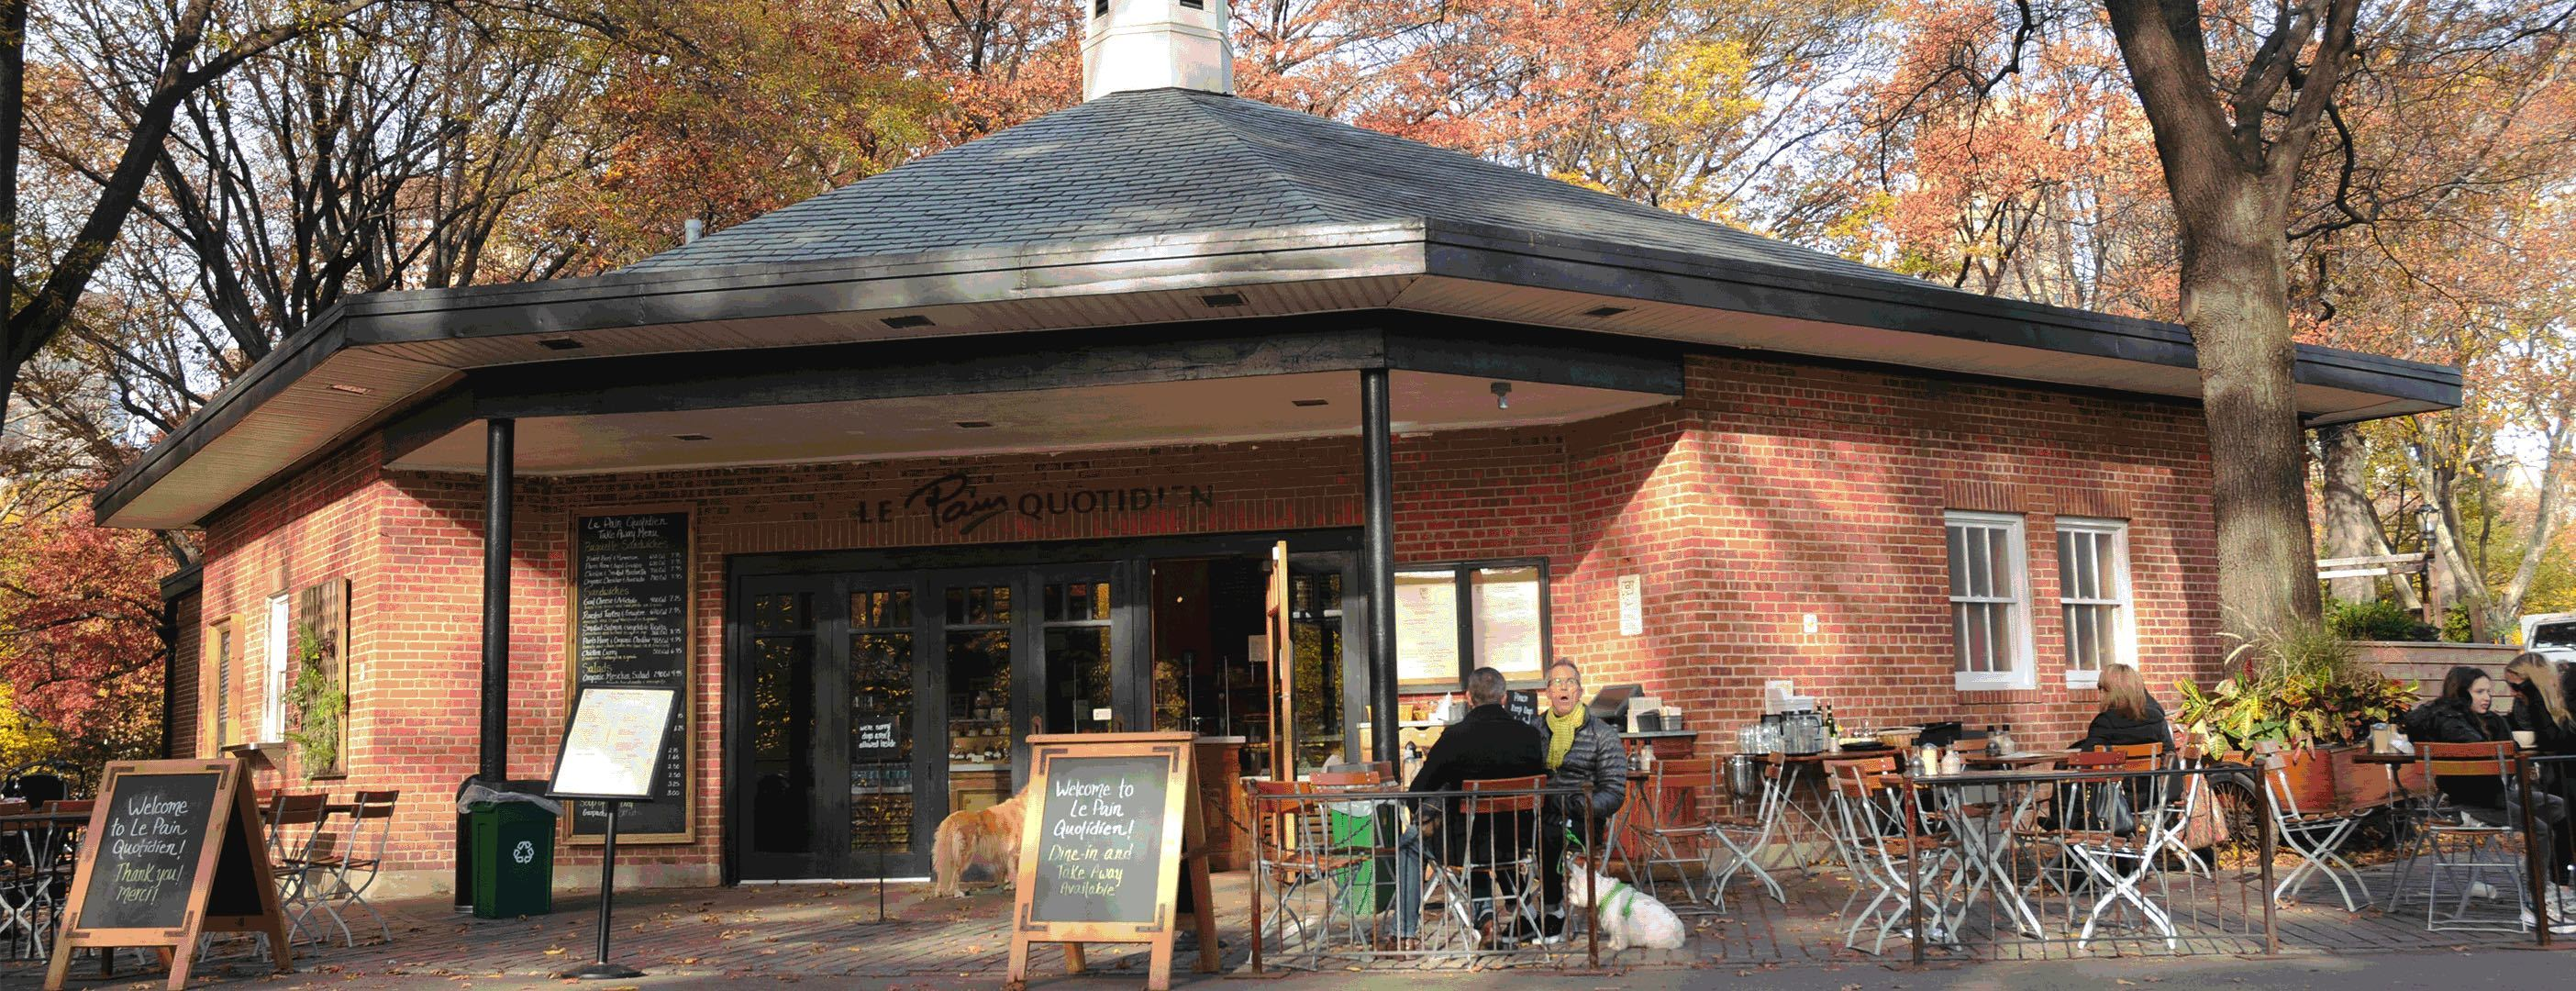 Le Pain Quotidien Mineral Springs